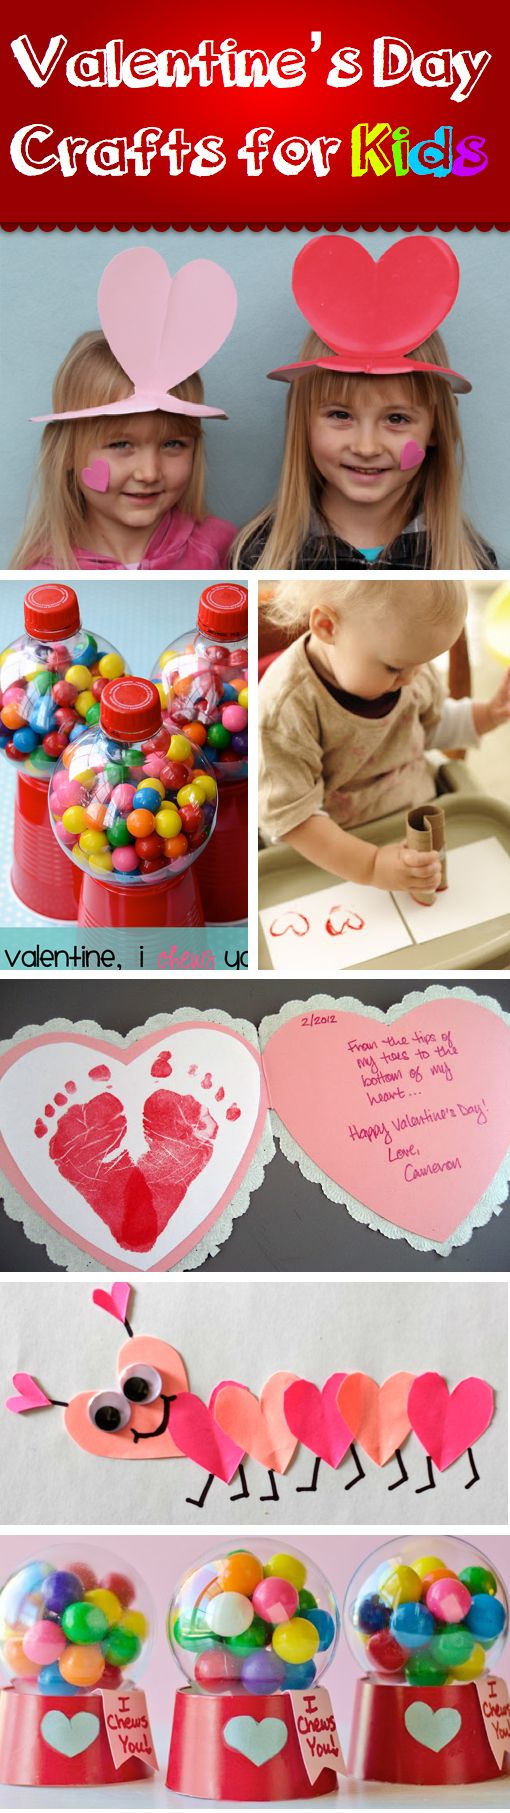 Make+Valentine's+Day+more+Colorful+With+These+Craft+Ideas+For+Kids